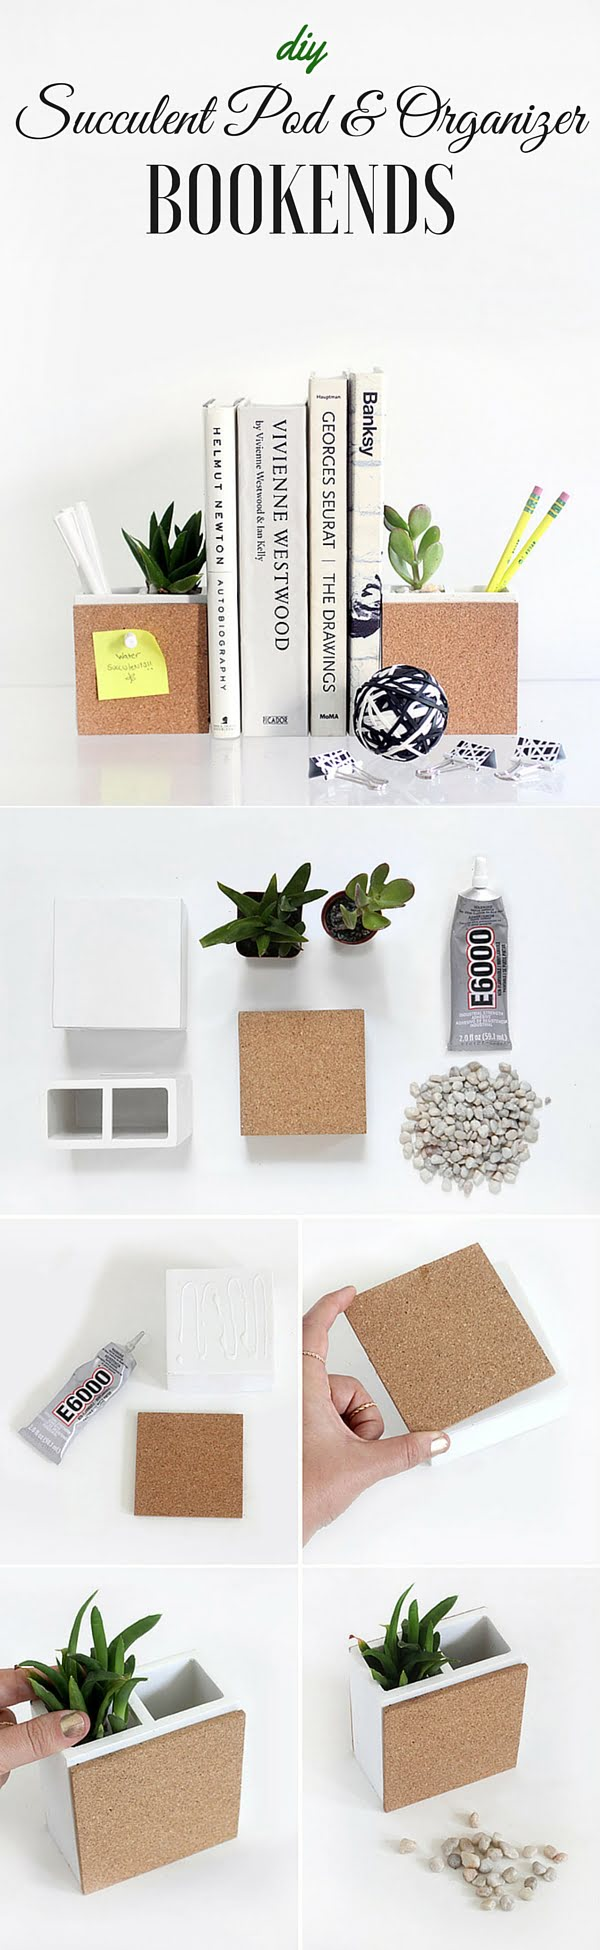 15 Easy and Brilliant DIY Home Decor Crafts on a Budget - Check out the tutorial: #DIY Succulent Pod & Organizer Bookends